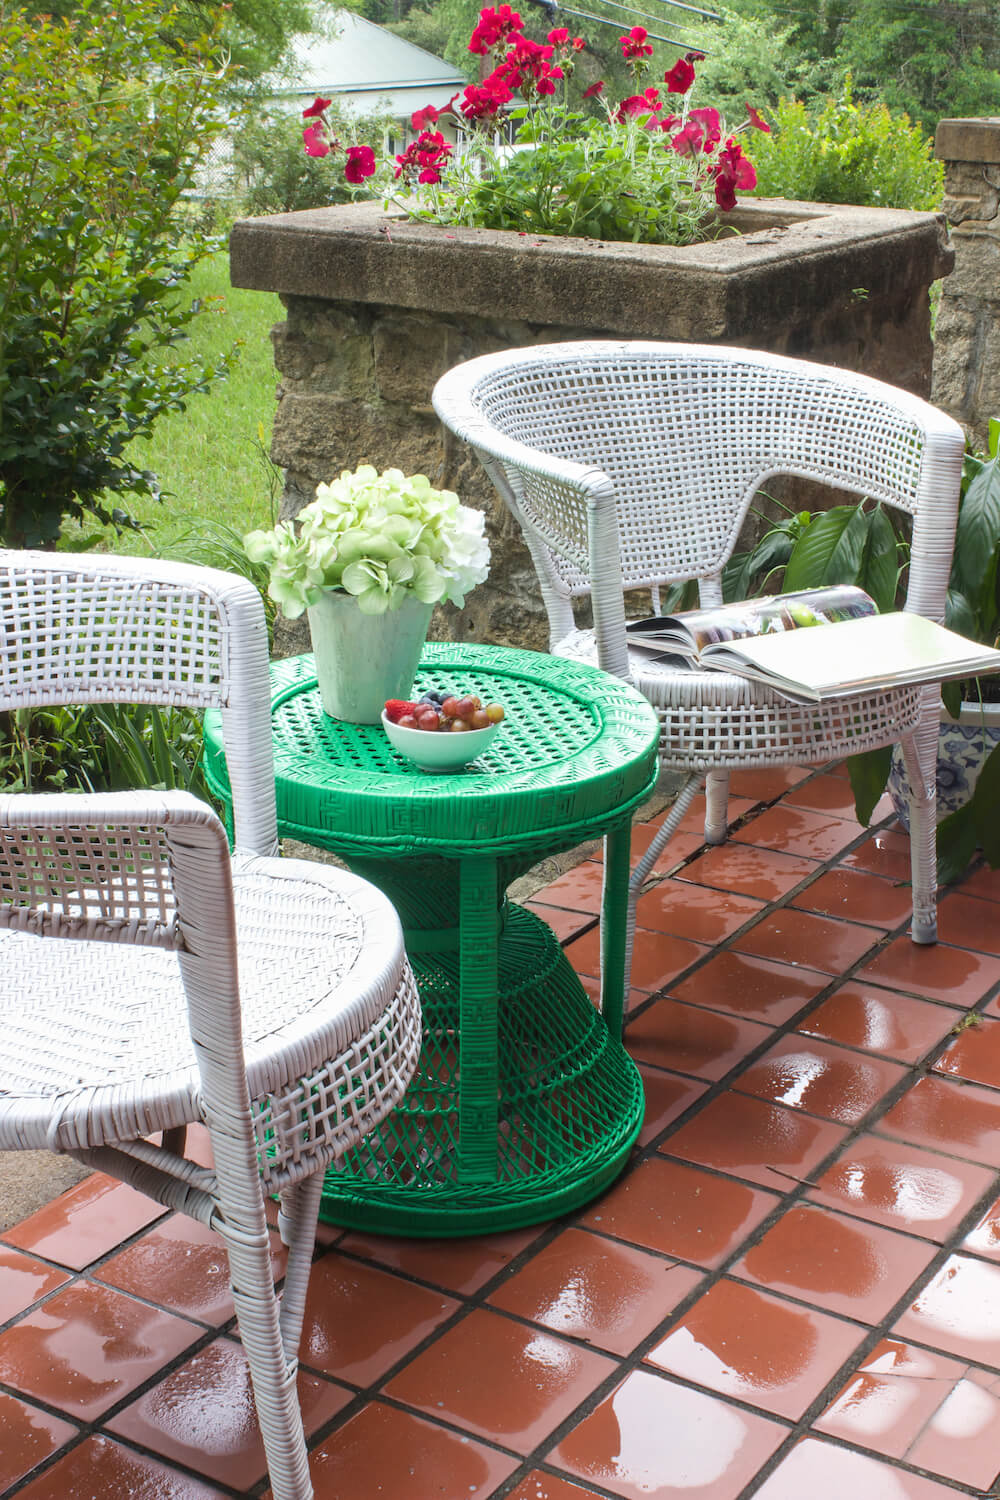 Charming Patio Seating for Your Enjoyment